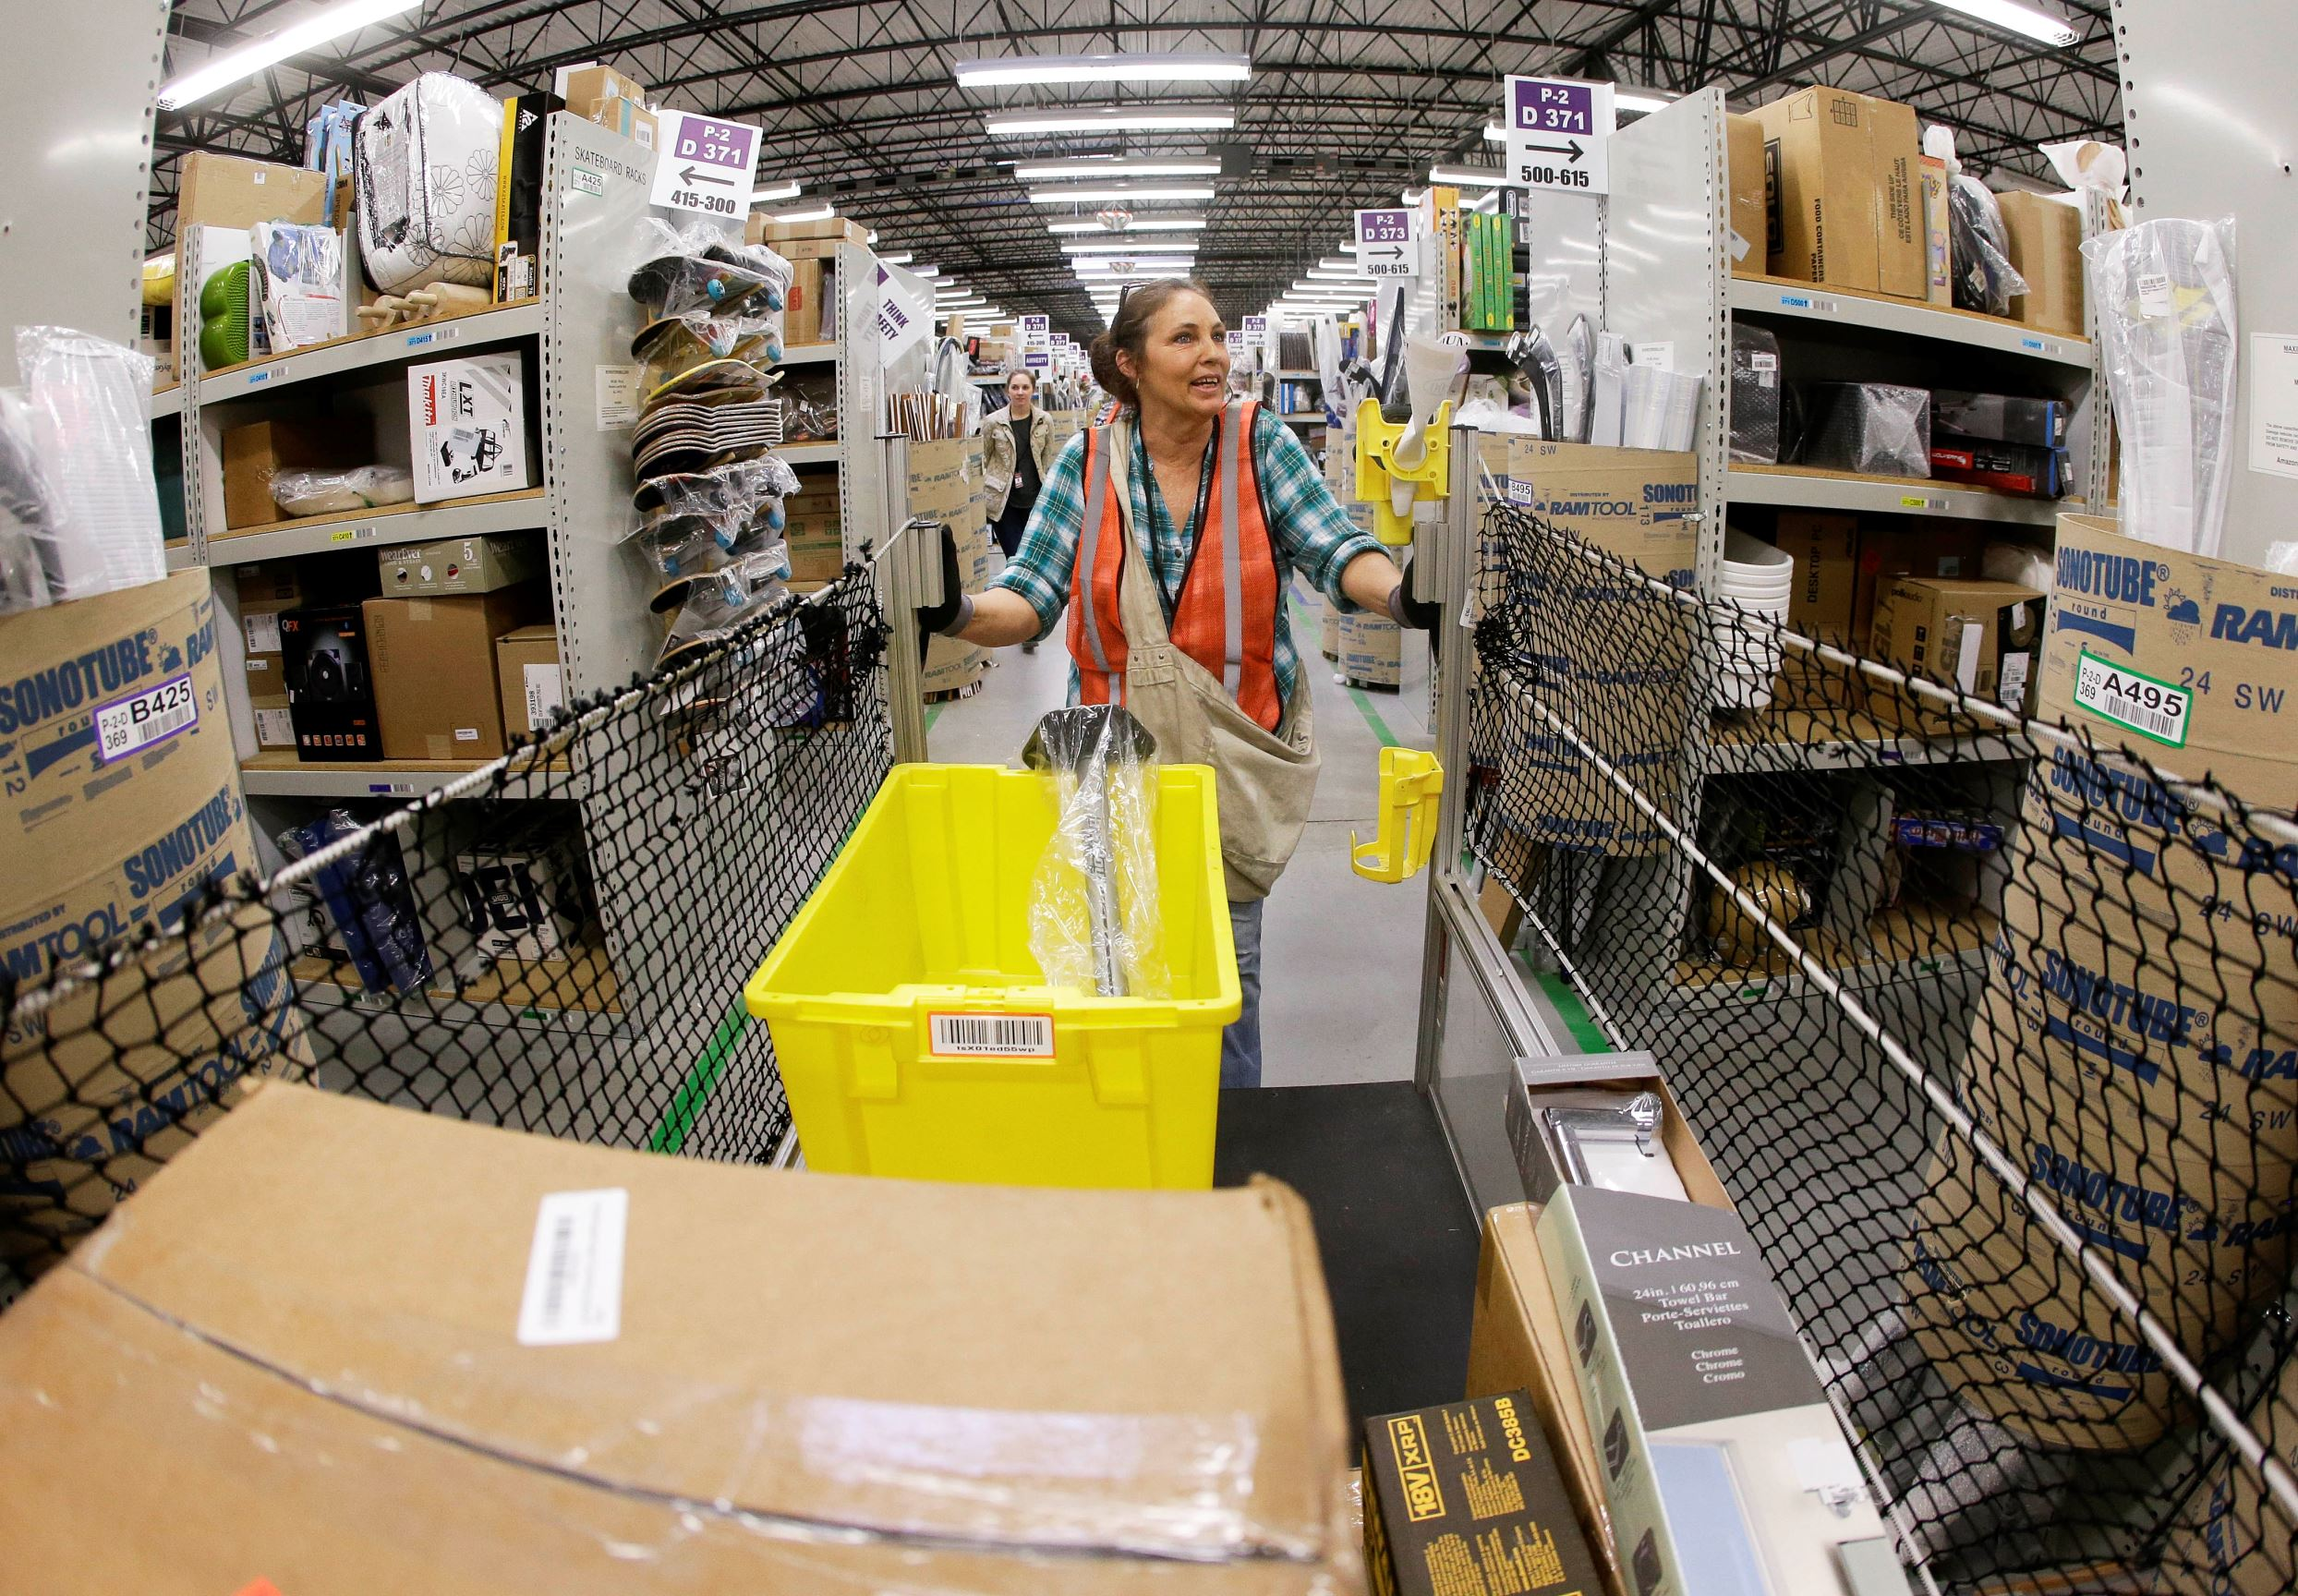 Theresa White fills orders at the Amazon fulfillment center in Lebanon